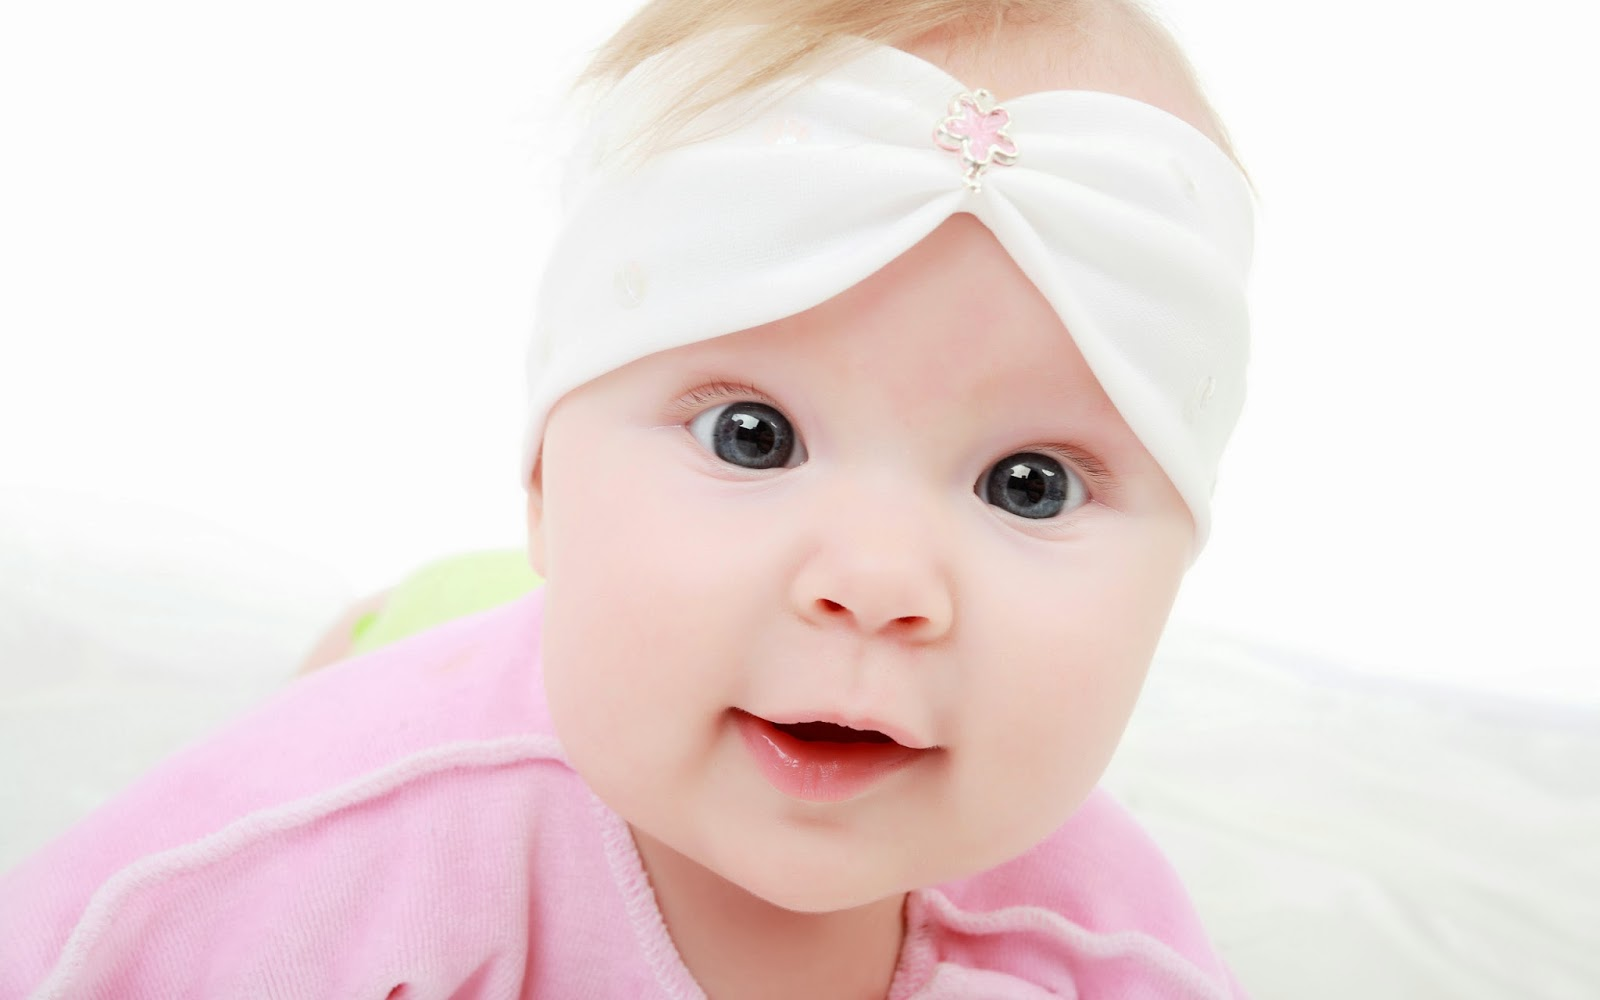 Cute Baby Wallpapers Free Download 4k Image Cute Baby 1600x1000 Download Hd Wallpaper Wallpapertip